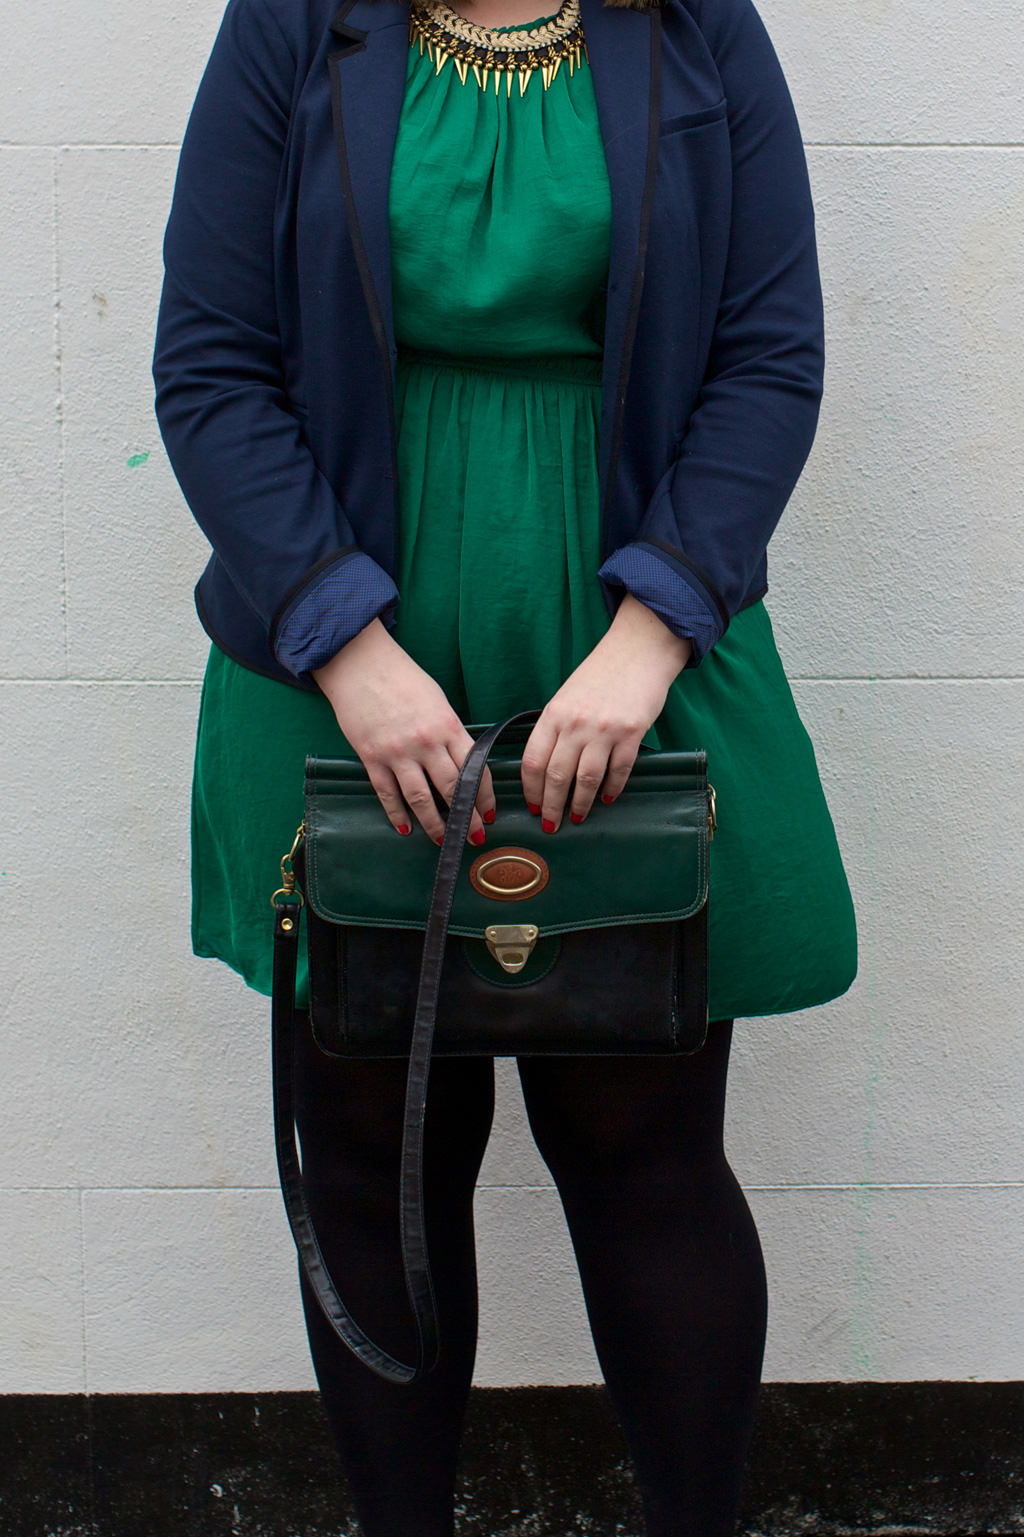 Allie Zara Dress Necklace April 020 OOTD: Zara Green Gathered Dress & Plaited Necklace